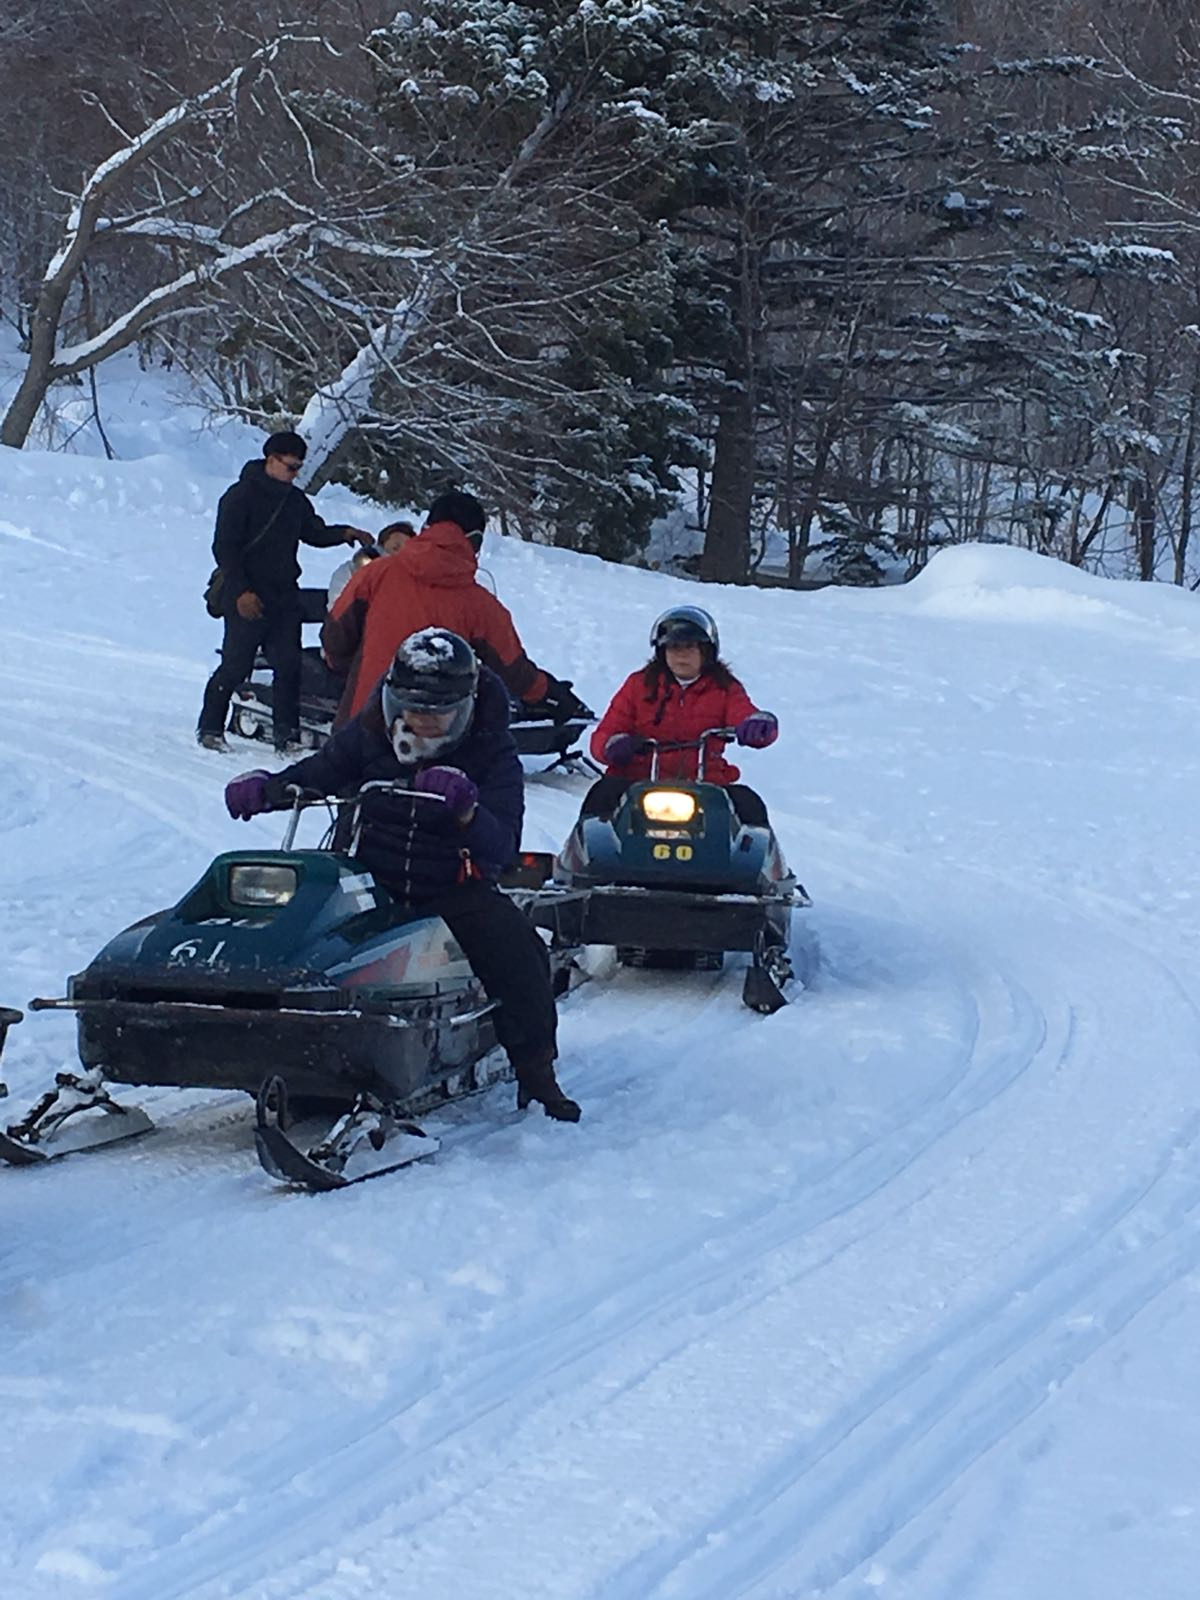 Thoroughly enjoyed the winter experience in Feb 2018 at Eastern Hokkaido